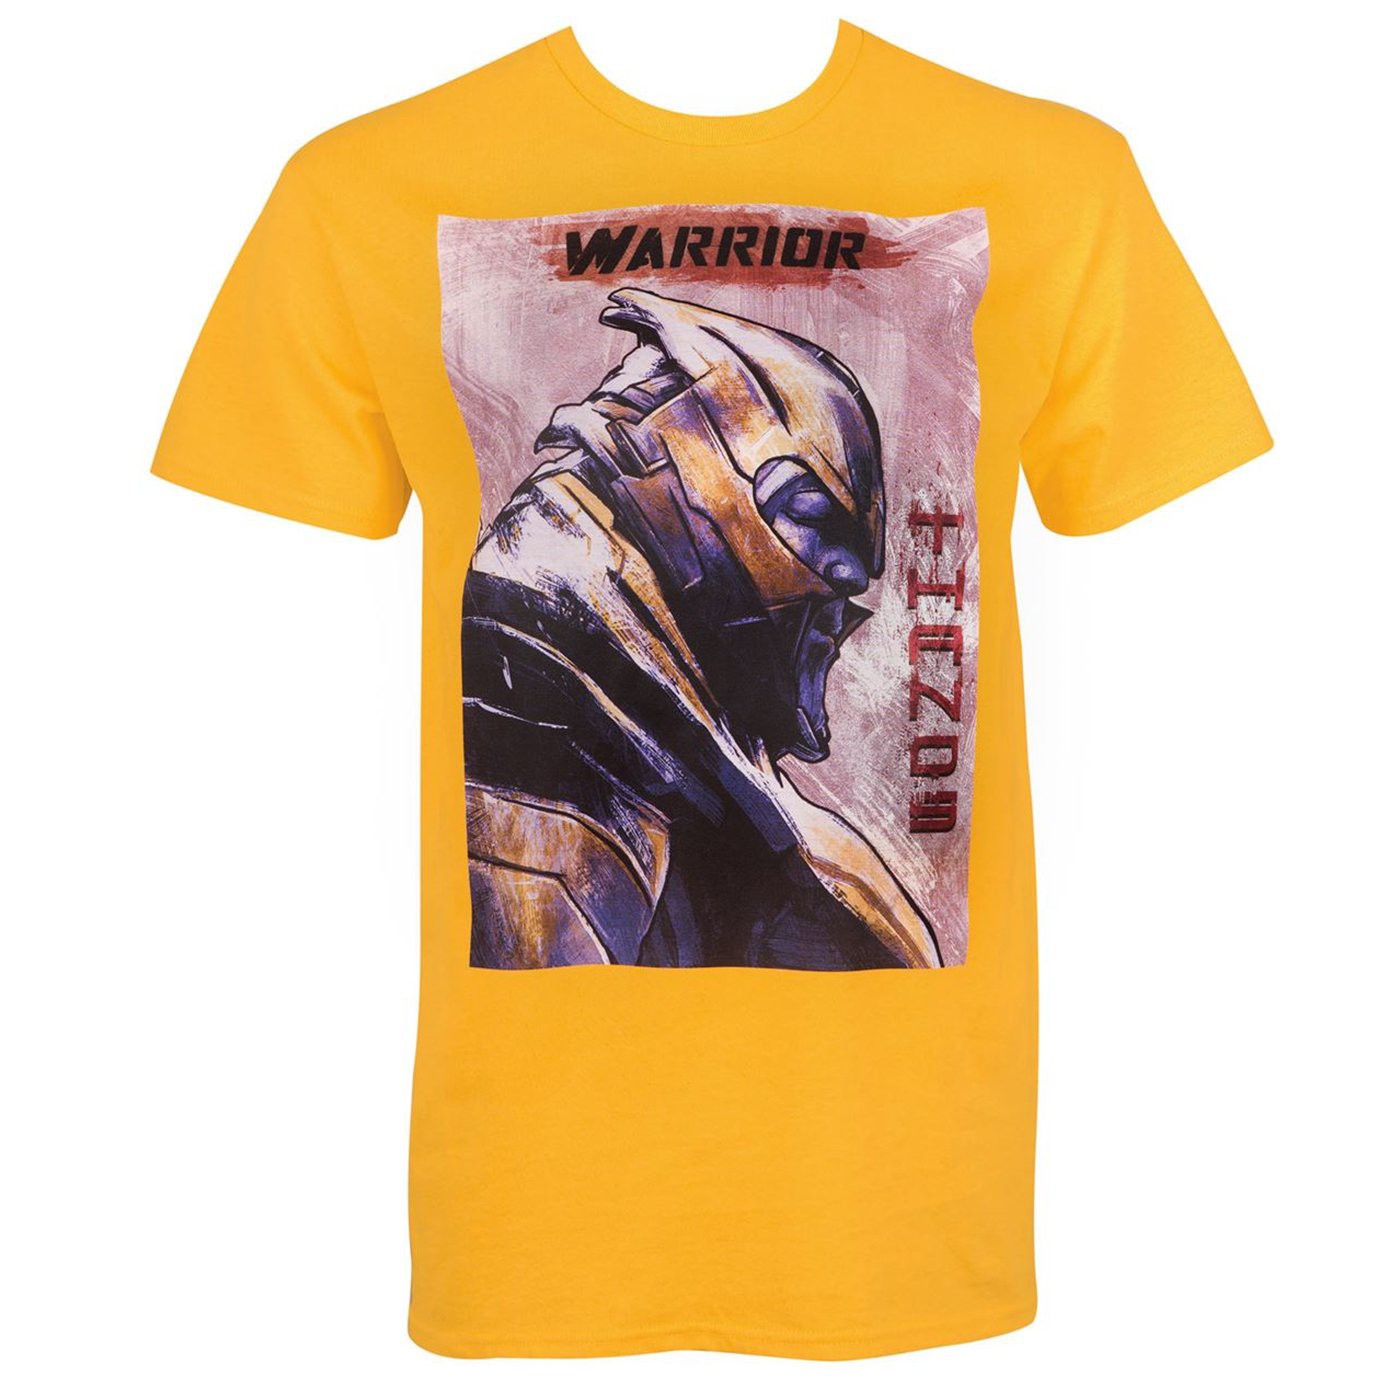 Thanos Warrior Profile Avengers Endgame Men's T-Shirt